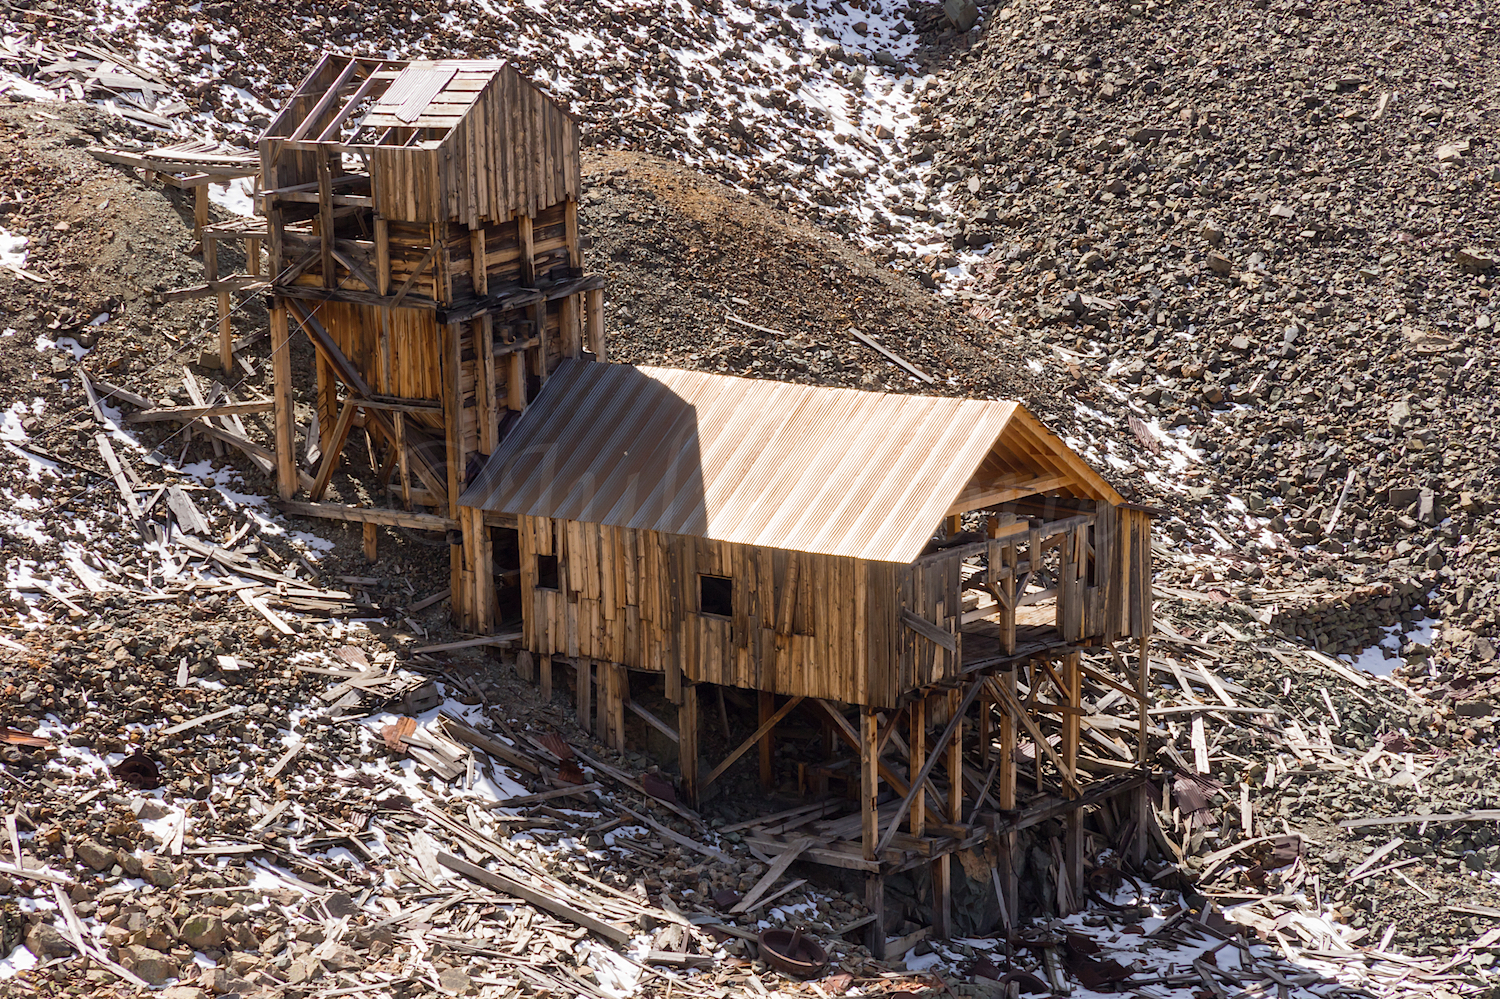 Contention Mine Tramhouse, Image # 8181